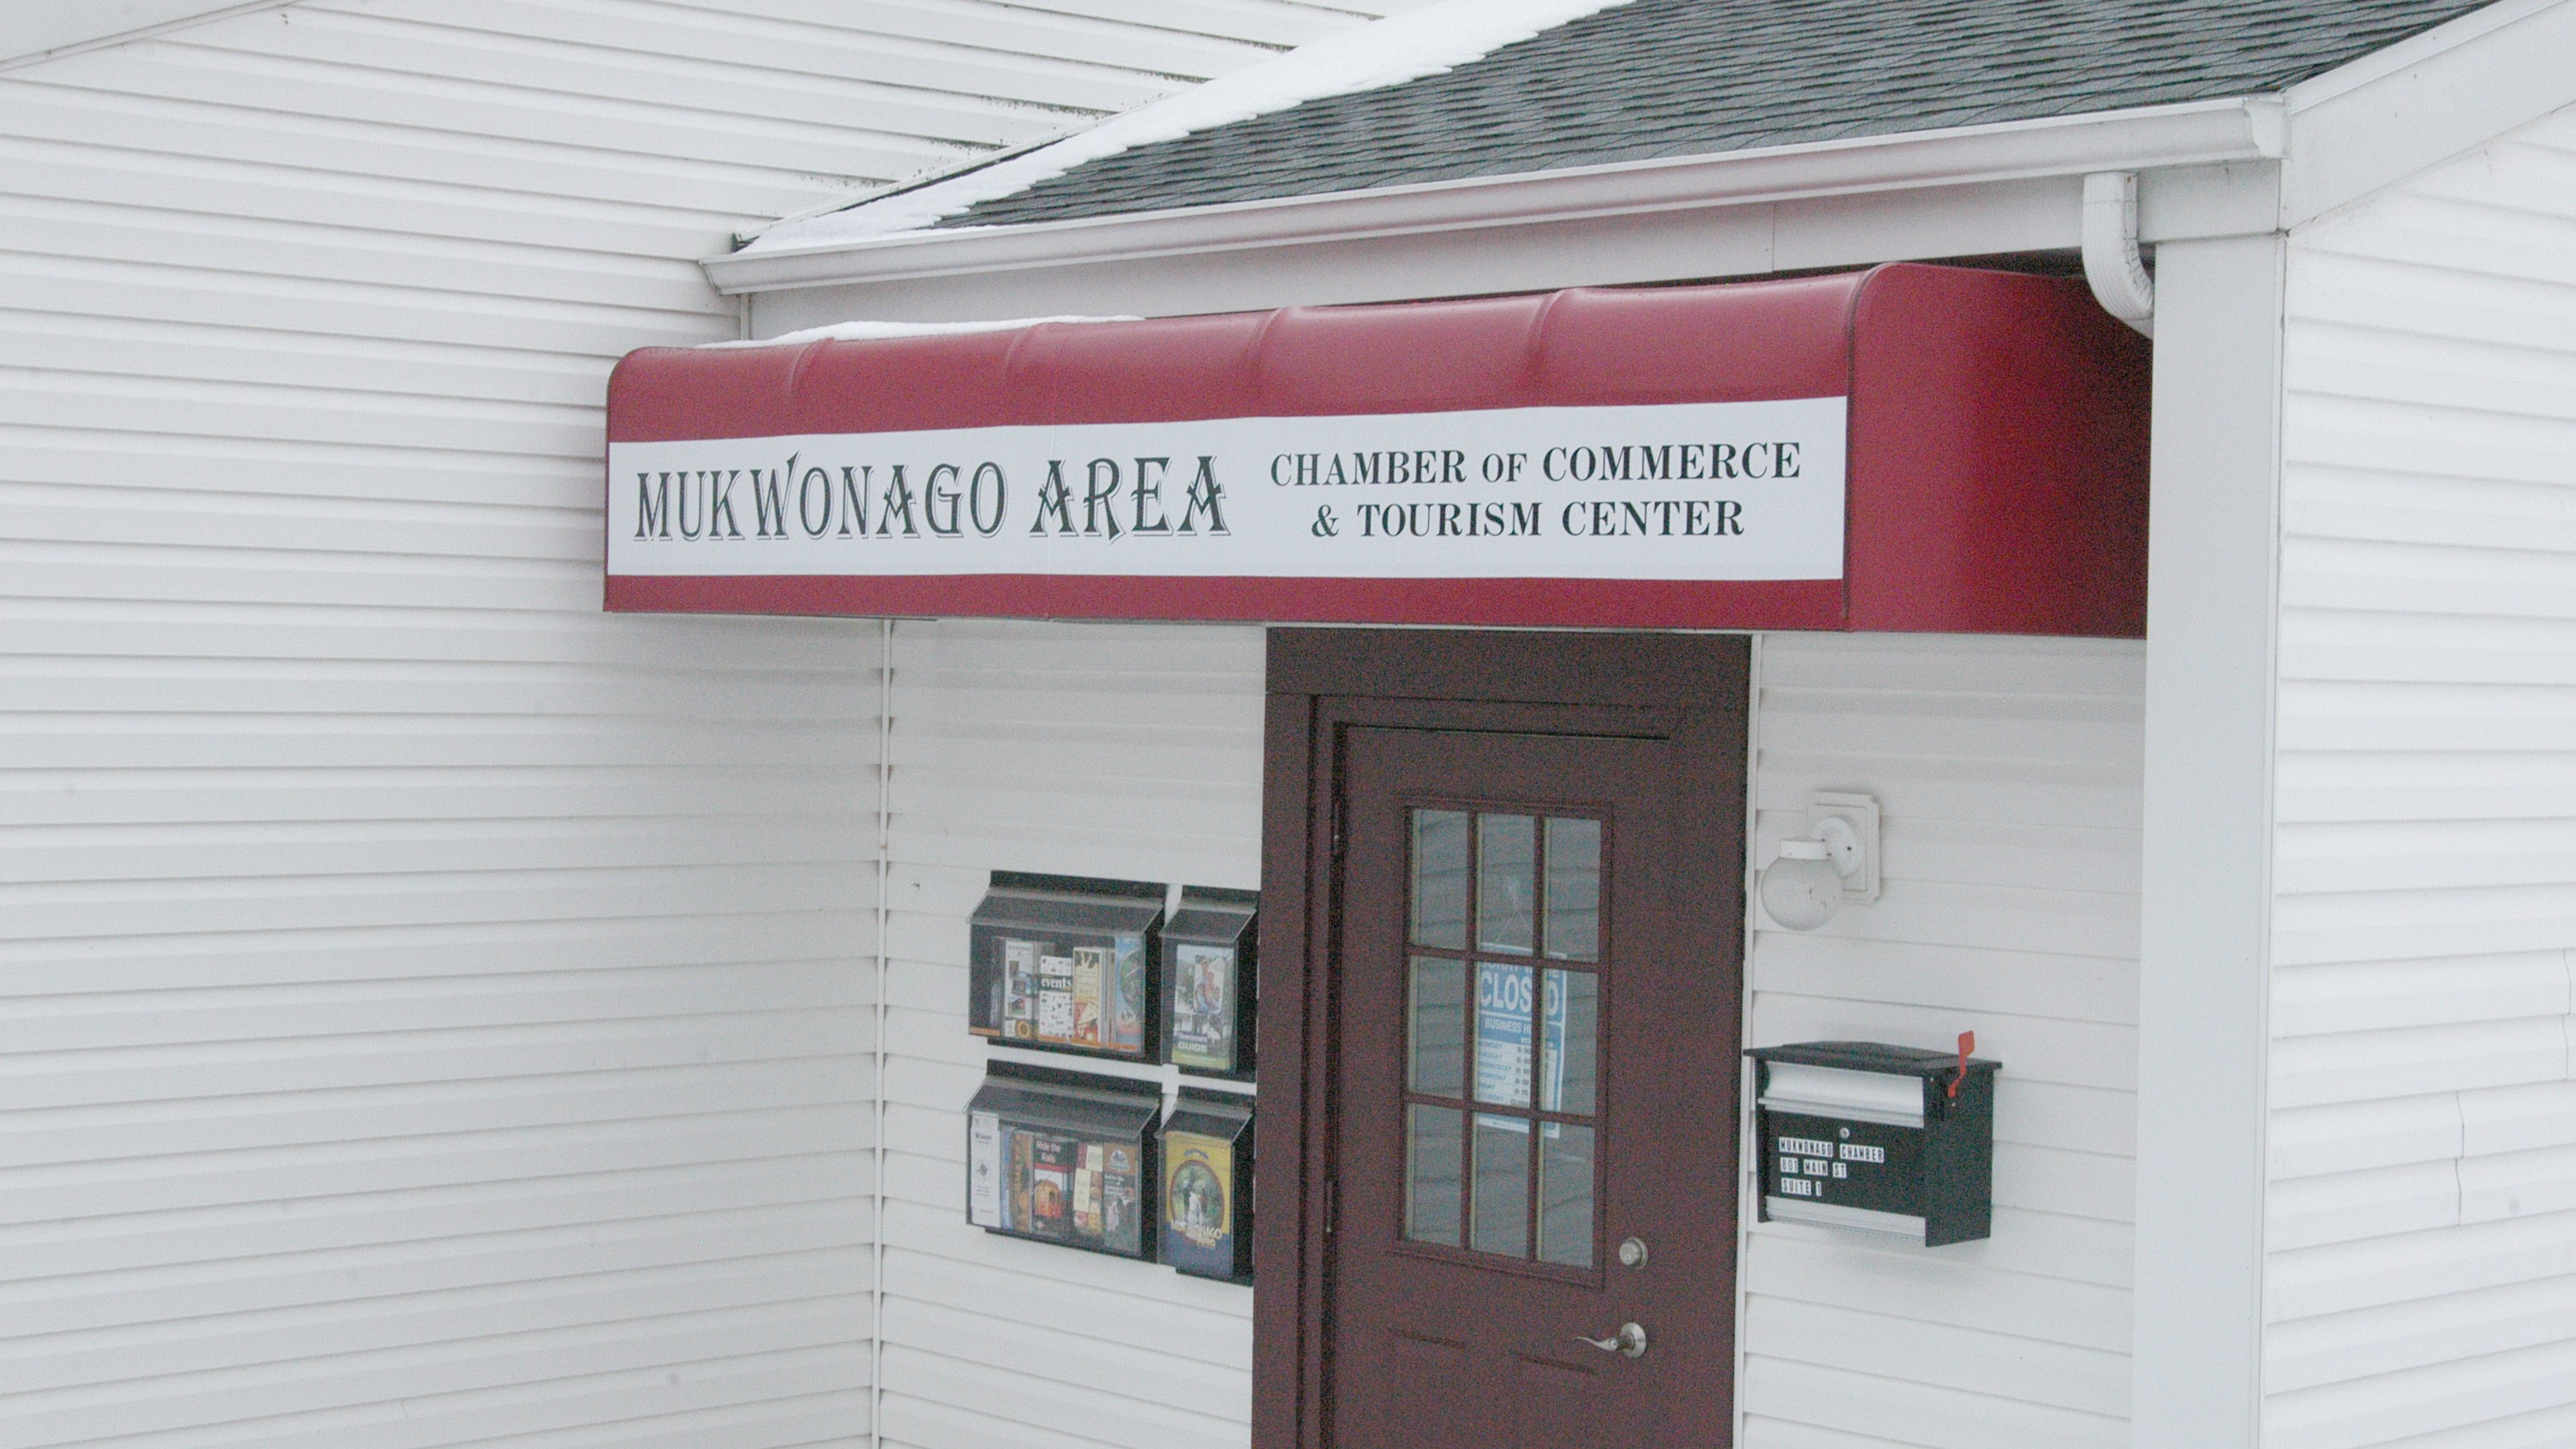 Mukwonago Area Chamber of Commerce Awning Sign produced and installed by signs and lines